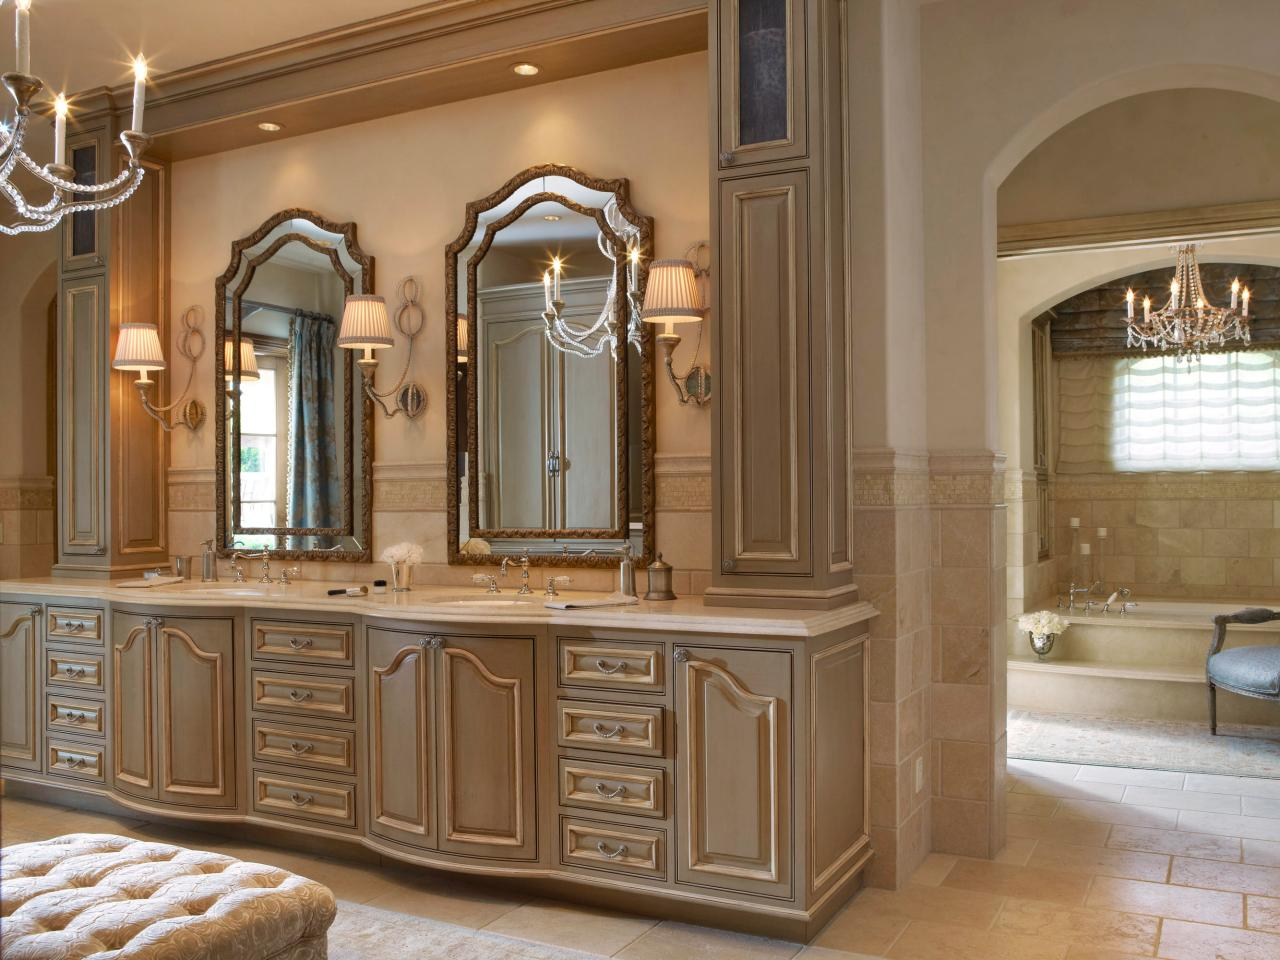 Dreamy bathroom vanities and countertops bathroom ideas for Bathroom furniture design ideas